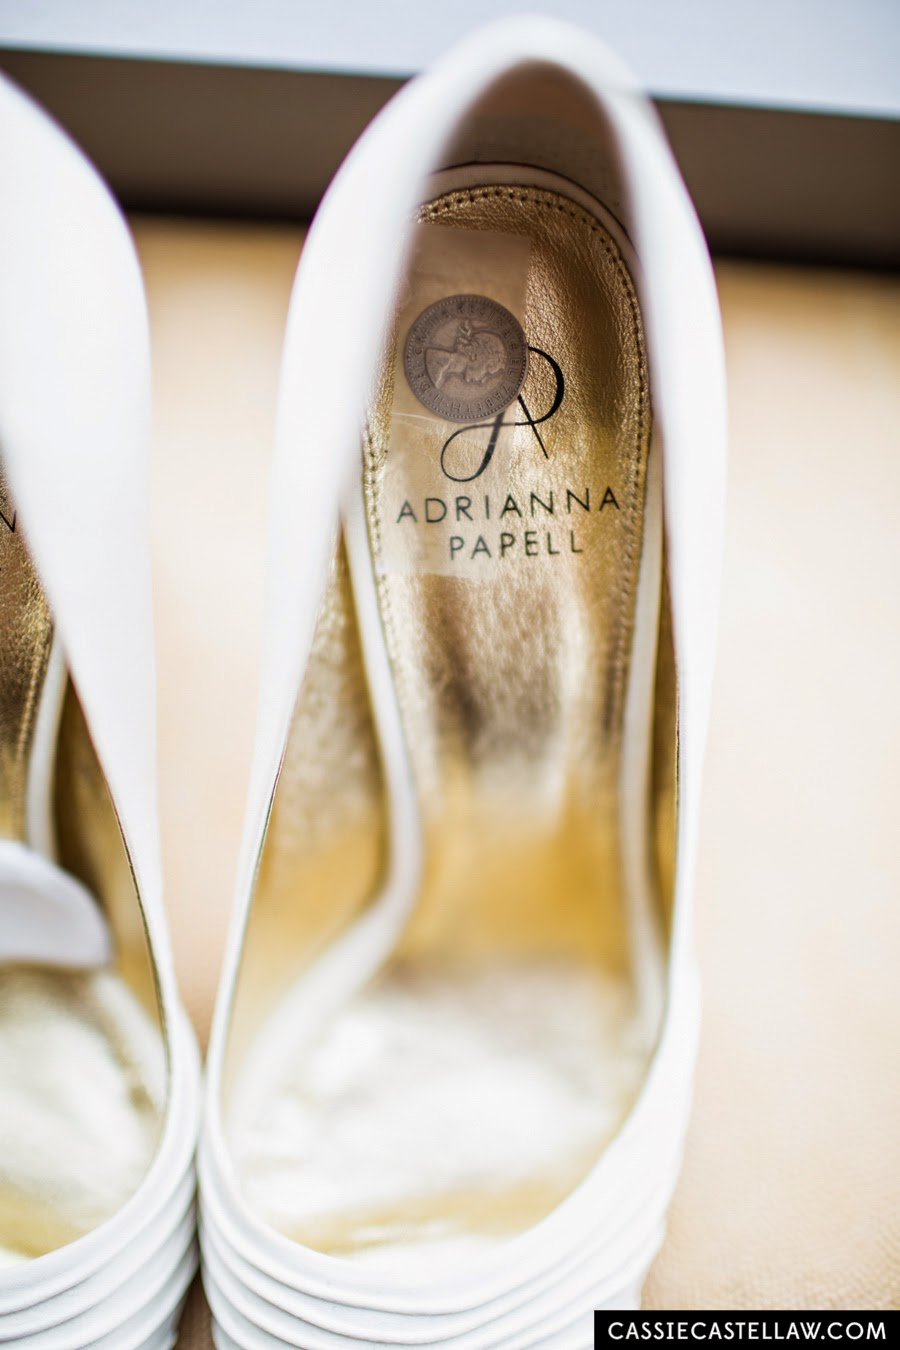 Six pence in her shoe. Adrianna Papell bridal wedding shoes. NYC Lifestyle wedding photography by Cassie Castellaw. www.cassiecastellaw.com